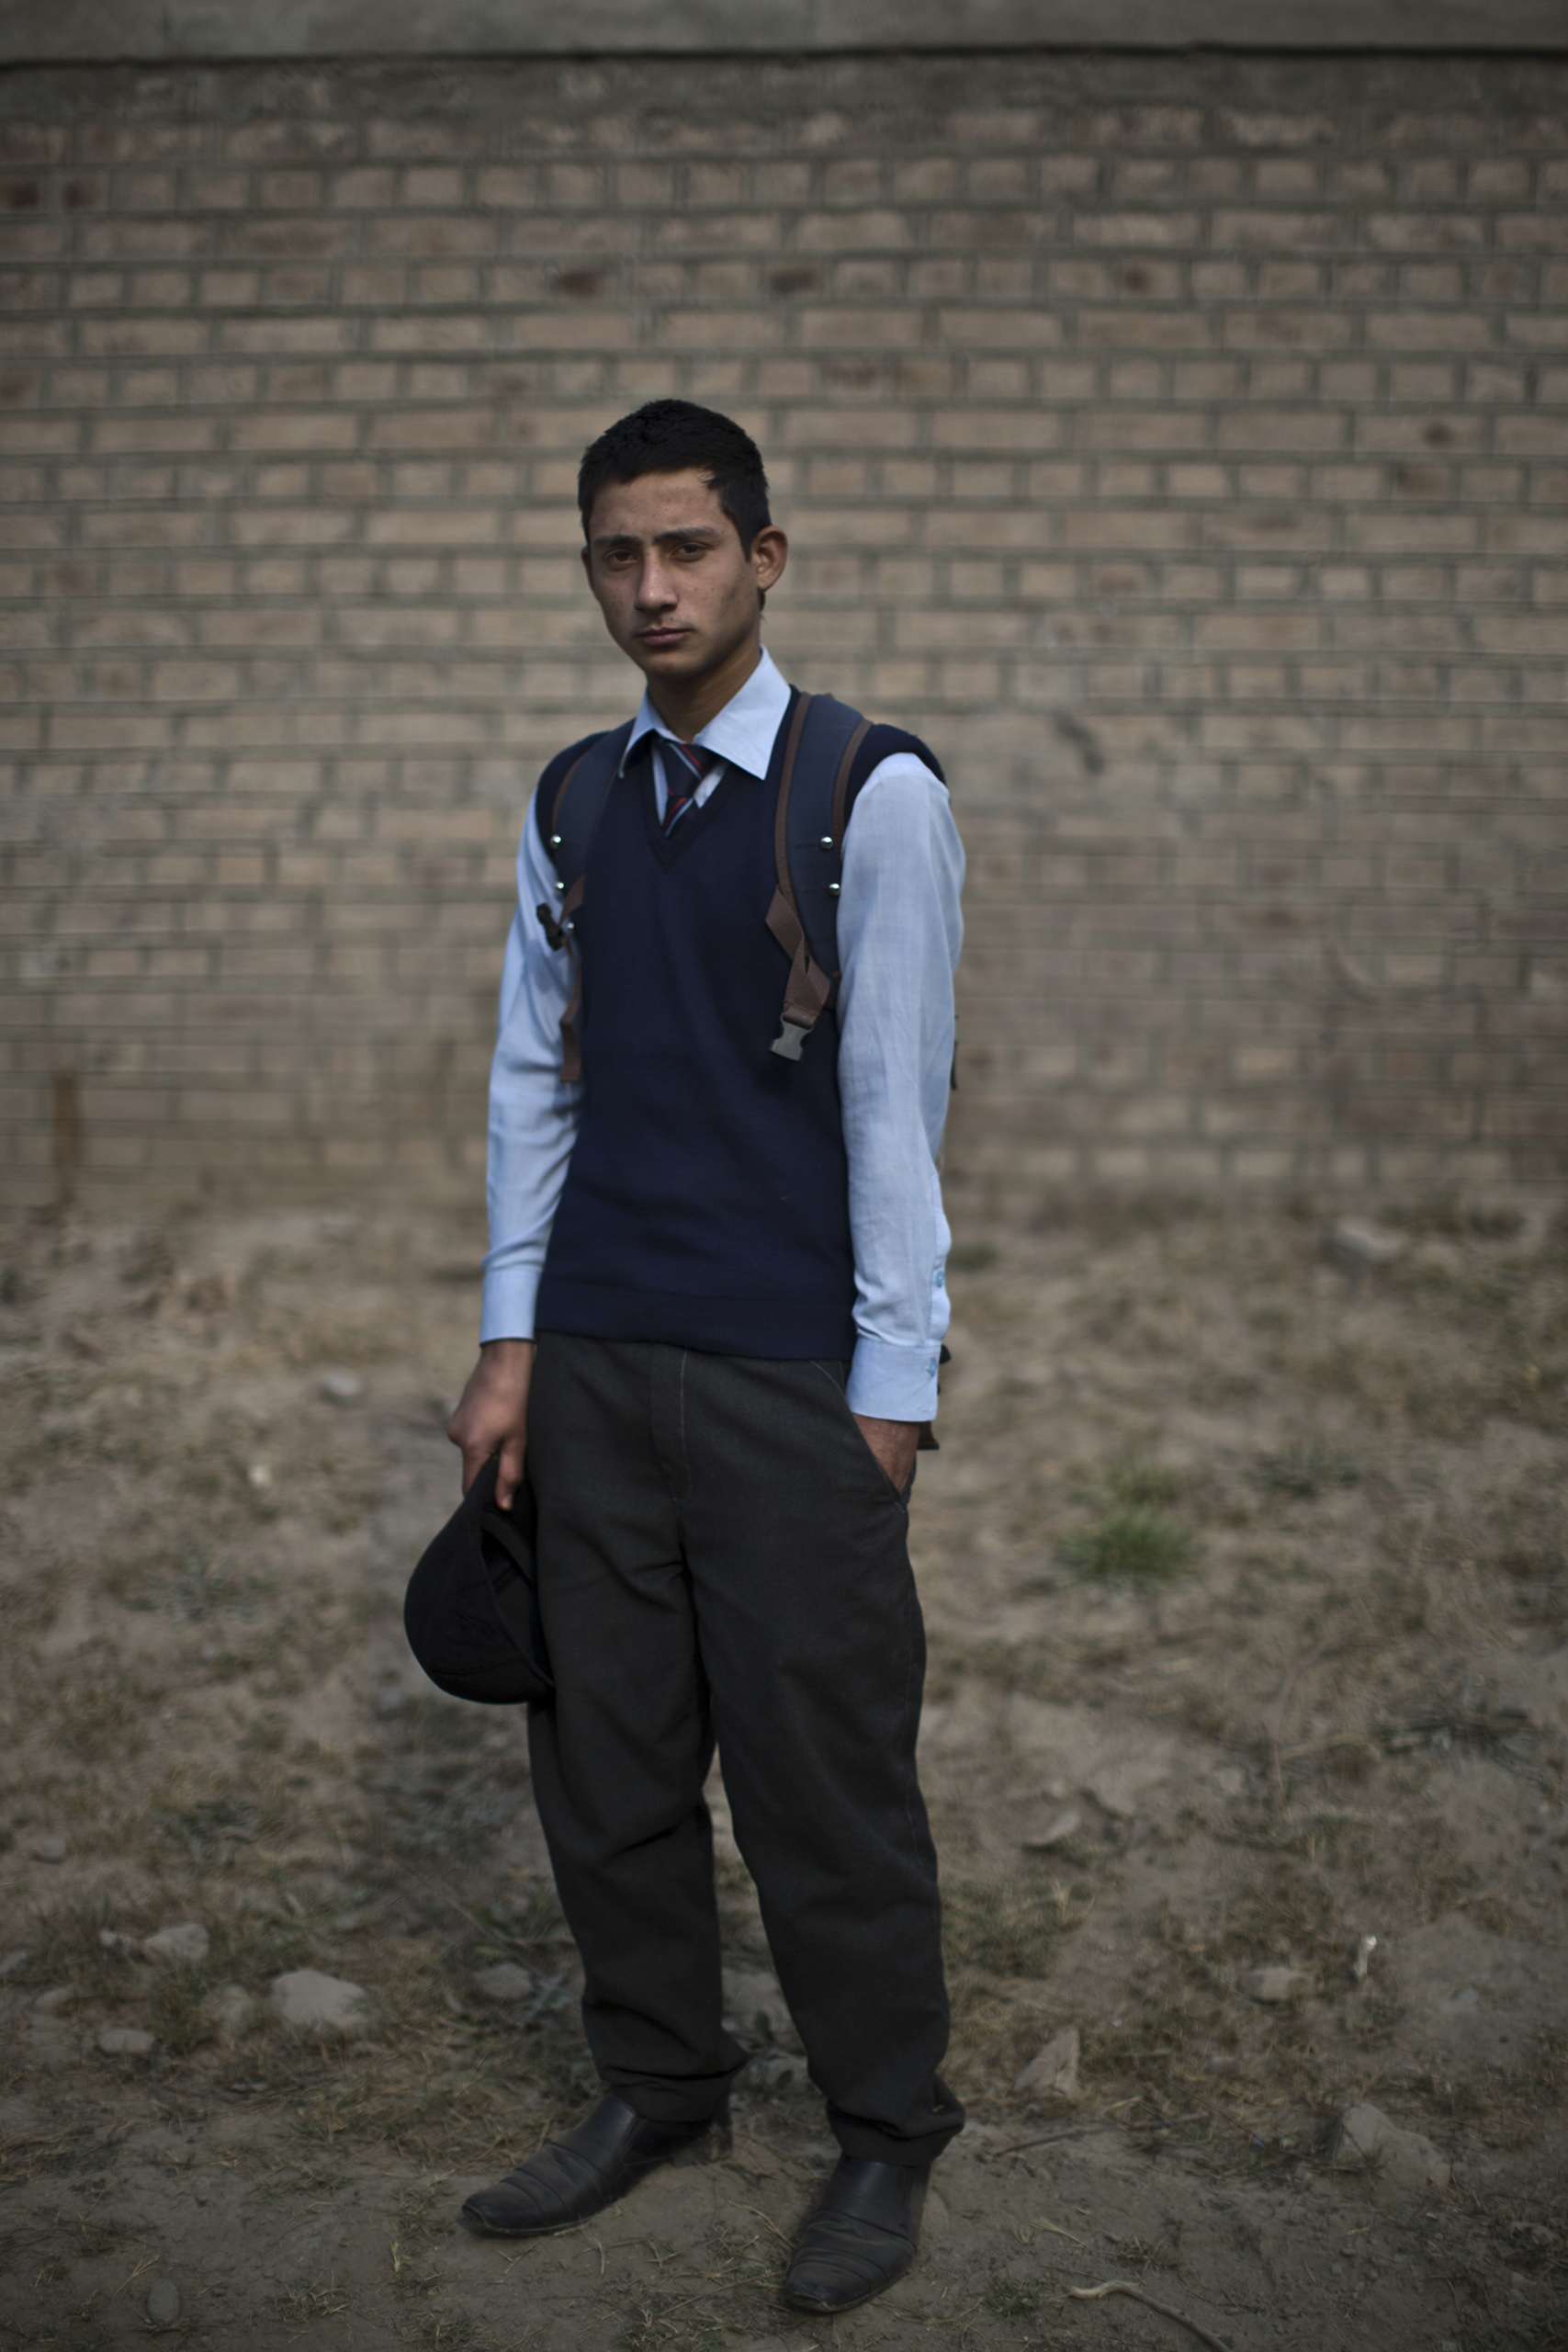 "Bilal Ahmad, 16, a student who survived the Pakistani Taliban's attack on the Army Public School on Dec. 16, in the school's yard. Peshawar, Pakistan. Dec. 20, 2014.                                                                      ""For almost an hour we were on the ground silently hearing our own breaths,"" Bilal said. ""And the sound of firing was endless till soldiers arrived and grabbed us and took us through the back doors out of the school."""